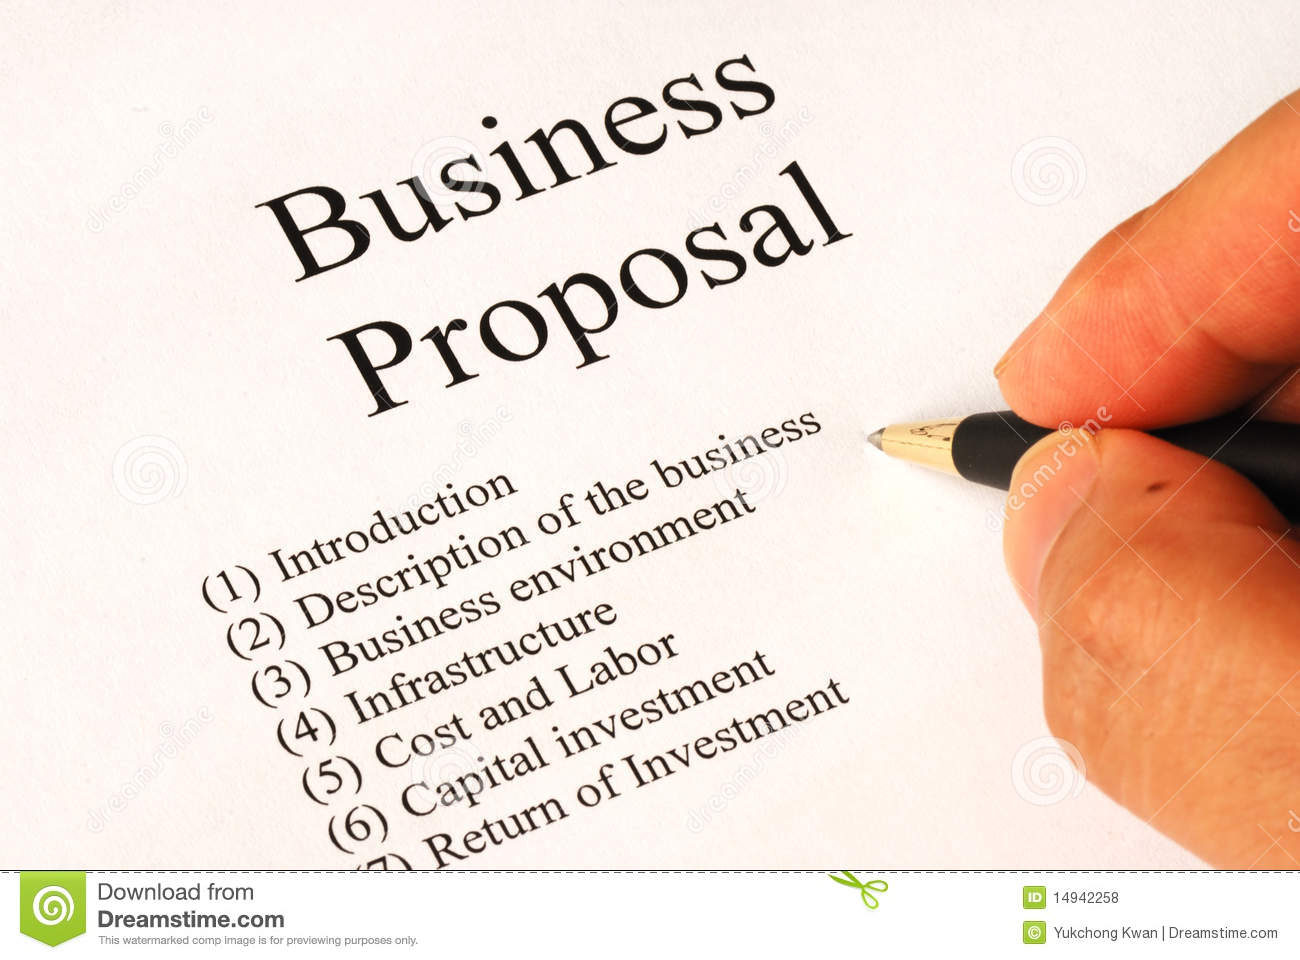 Business Proposal Clipart On the business proposal